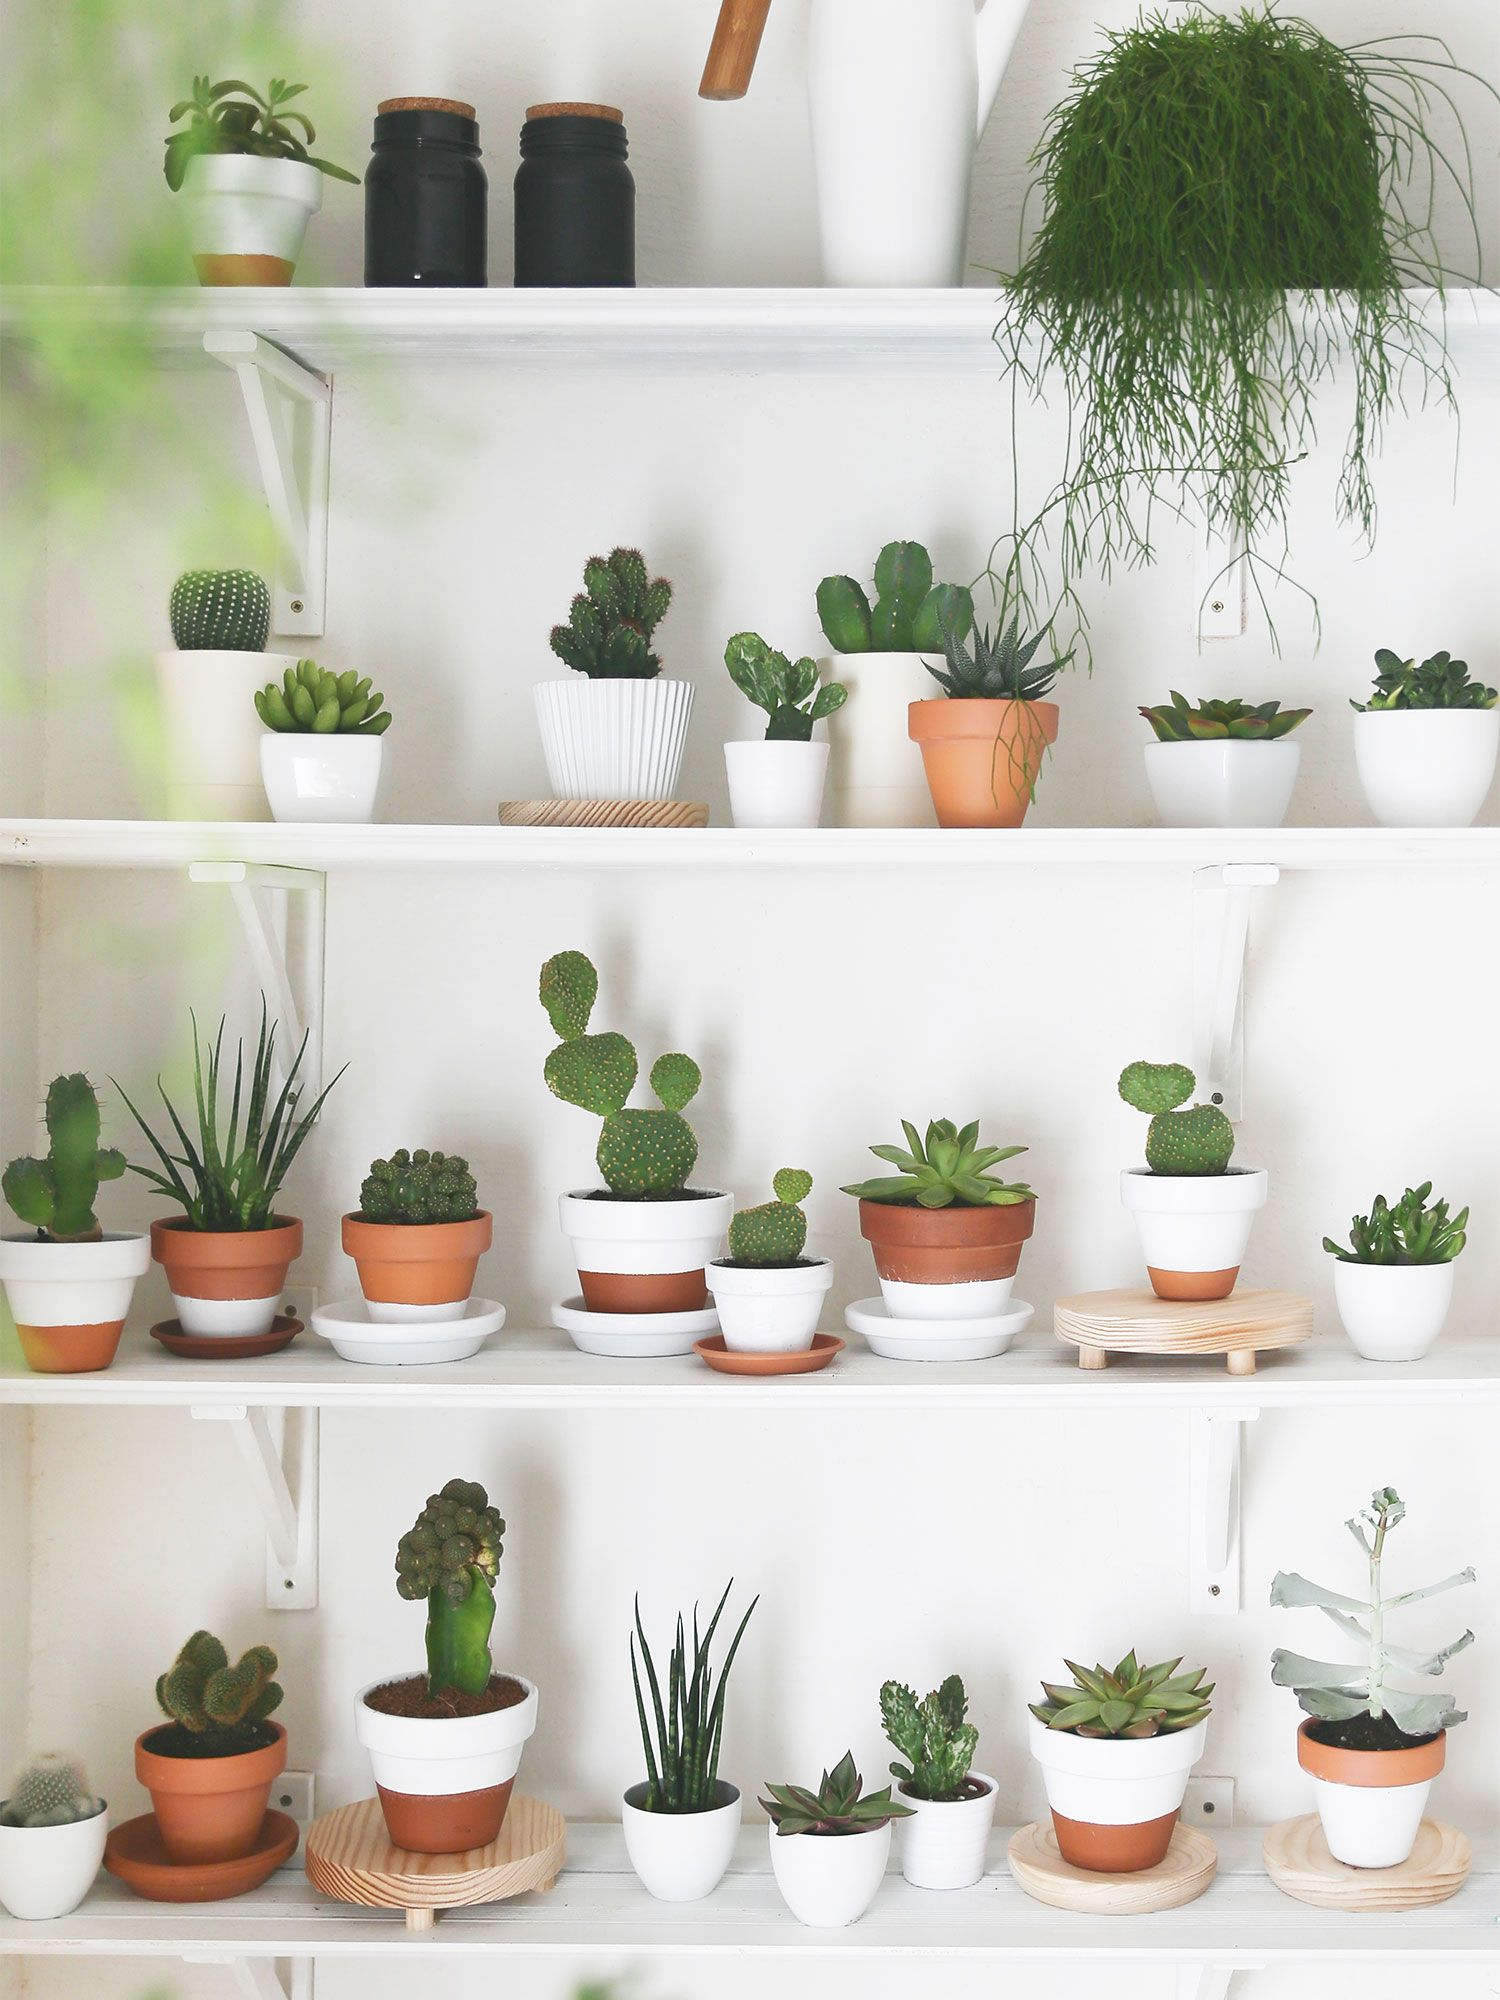 Cool Cacti: How To Style Cactus In The Home